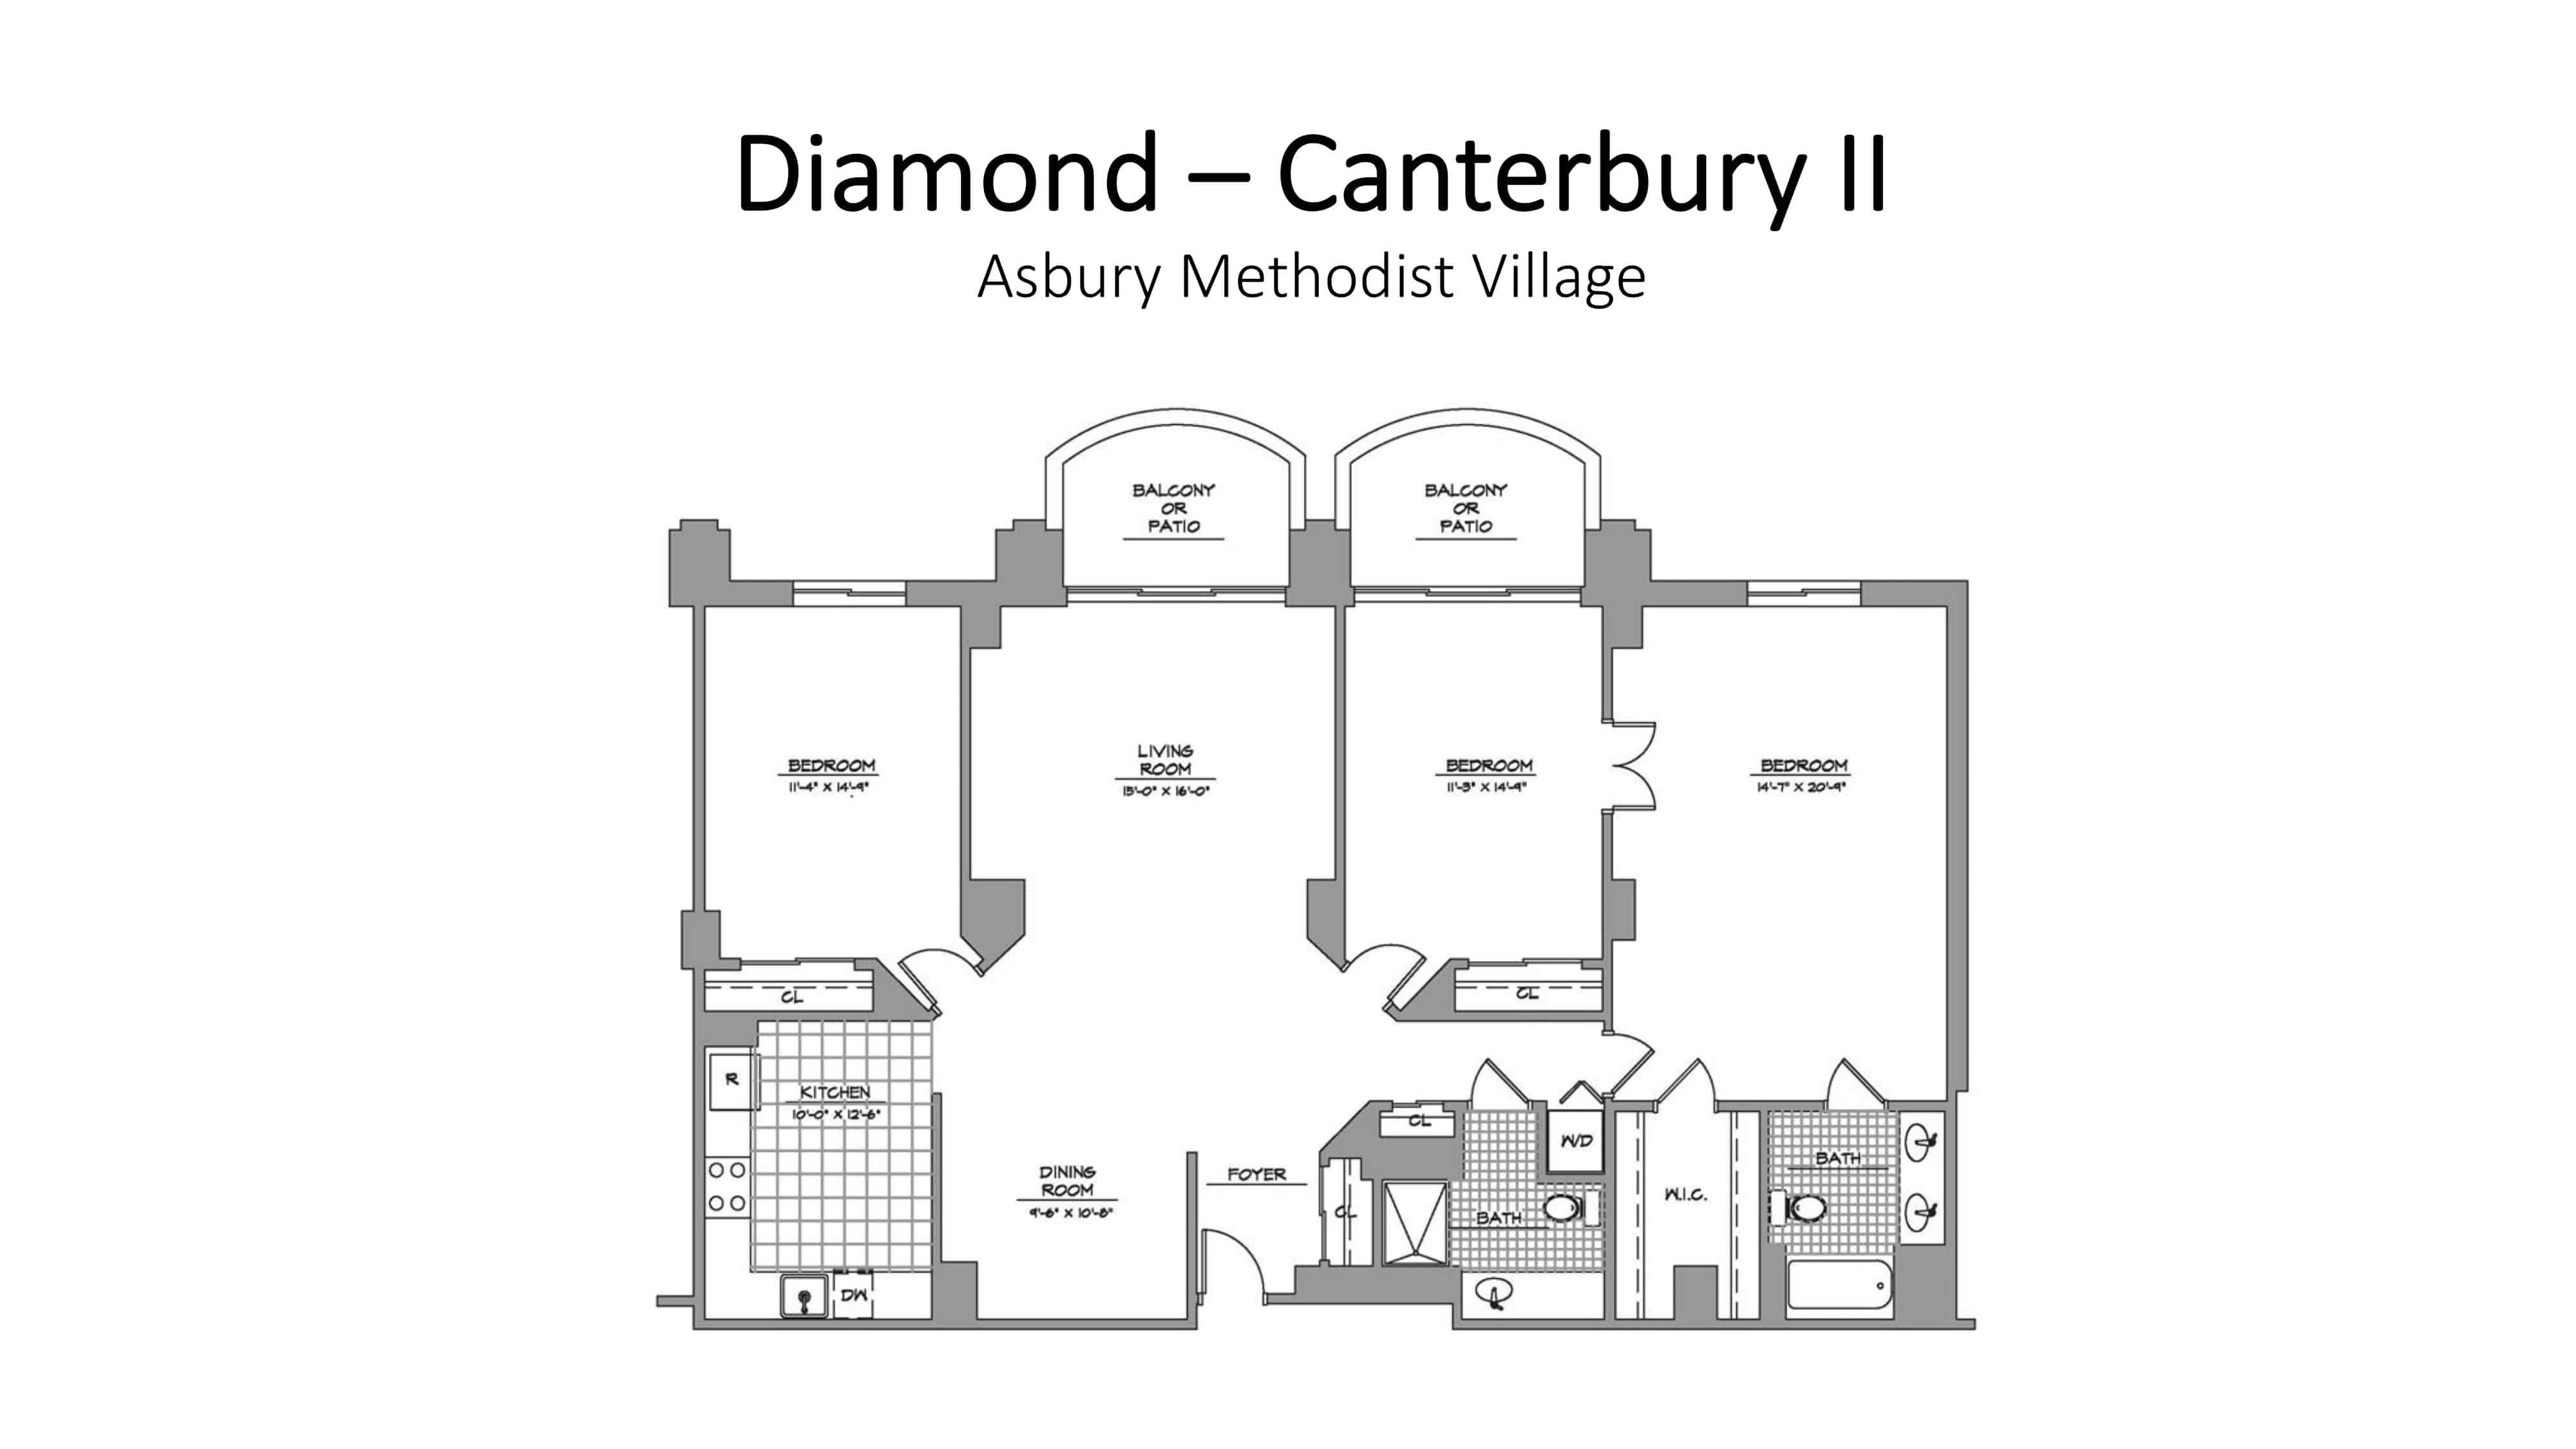 Asbury Methodist Village Diamond - Canterbury II